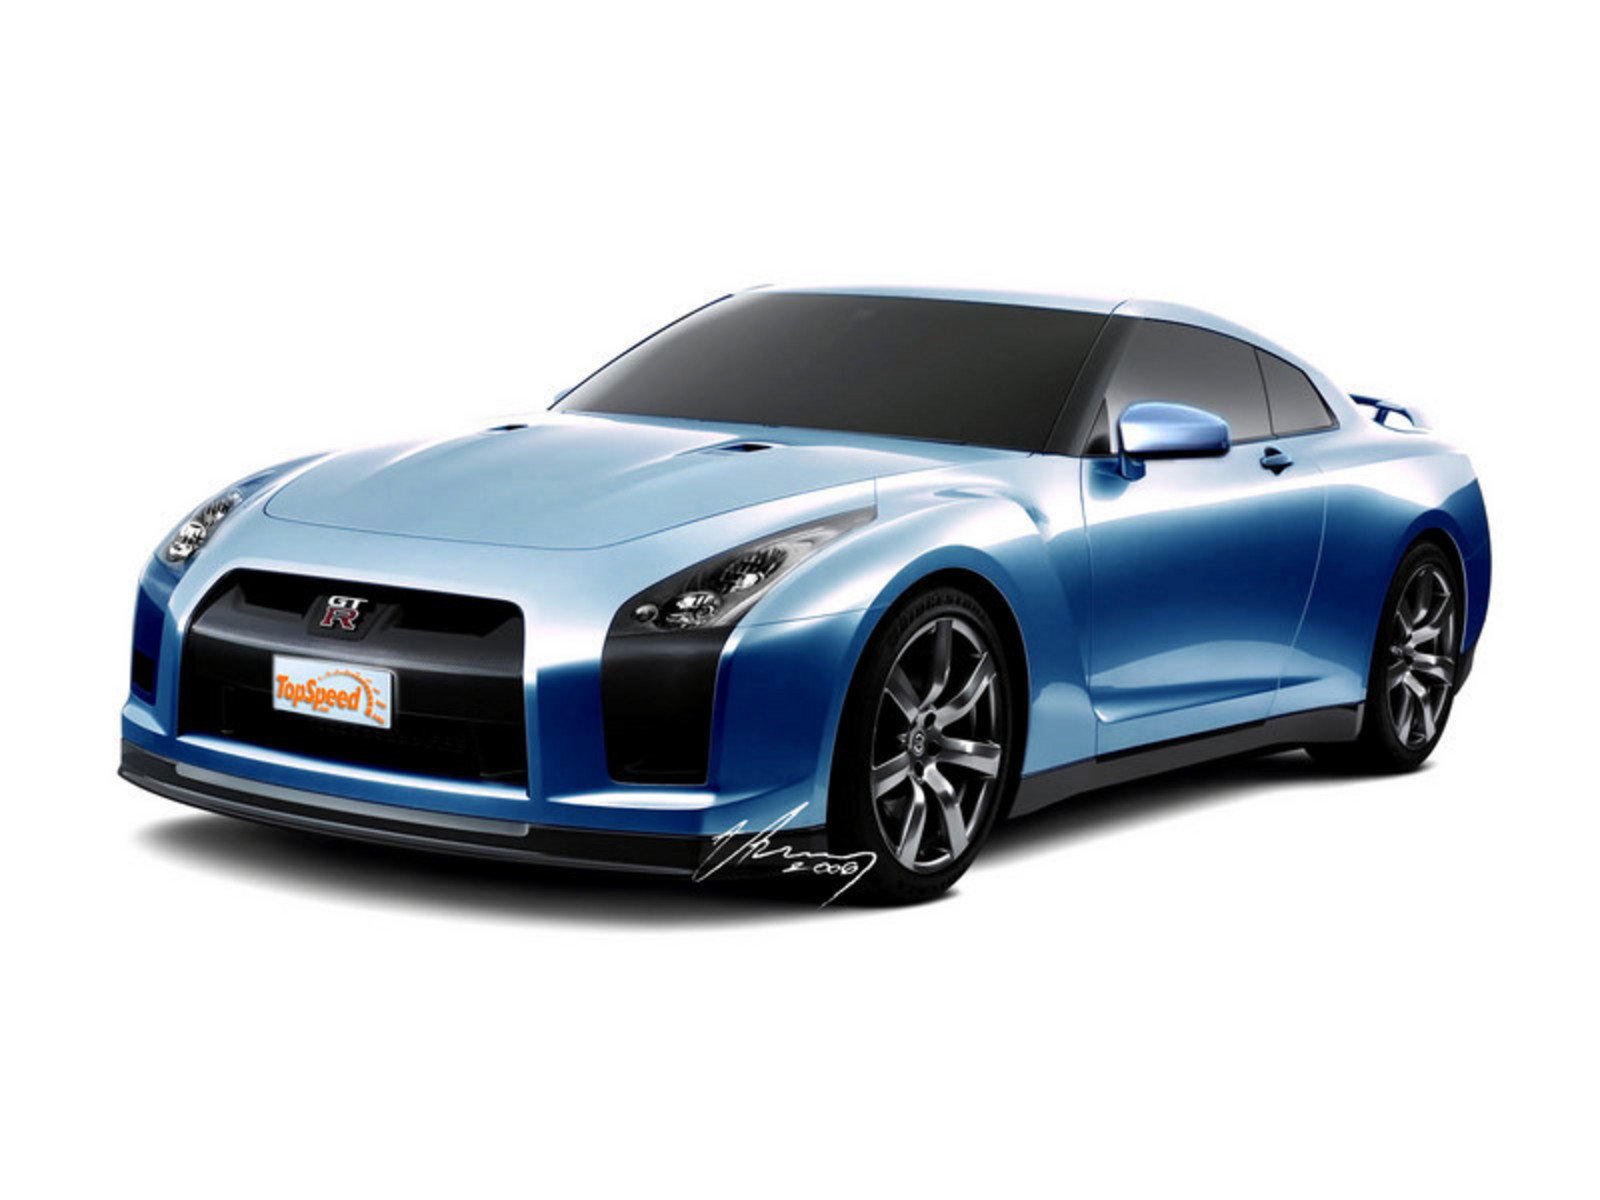 2007 nissan skyline gt r preview review top speed. Black Bedroom Furniture Sets. Home Design Ideas